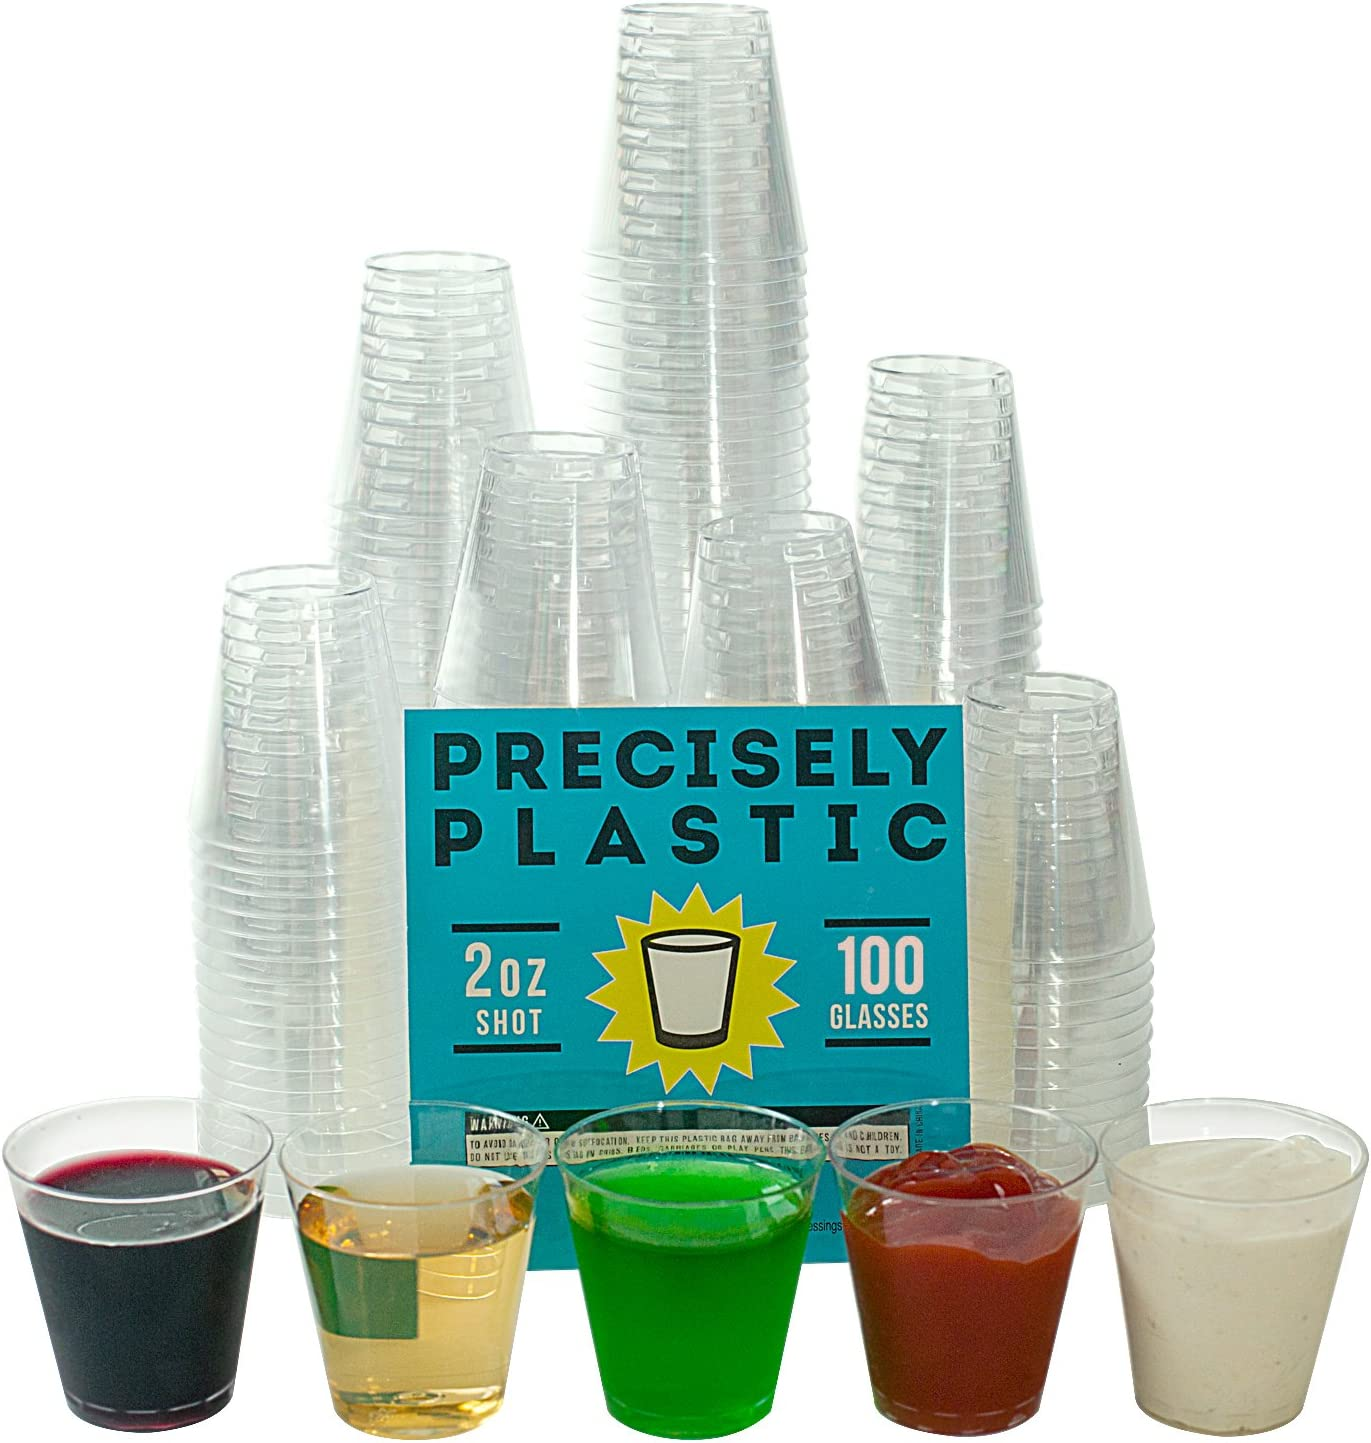 2 Height Perfect Stix Shot Glass 1oz-100 Plastic Disposable Shot Glasses 2 Width 4 Length 1 oz Pack of 100